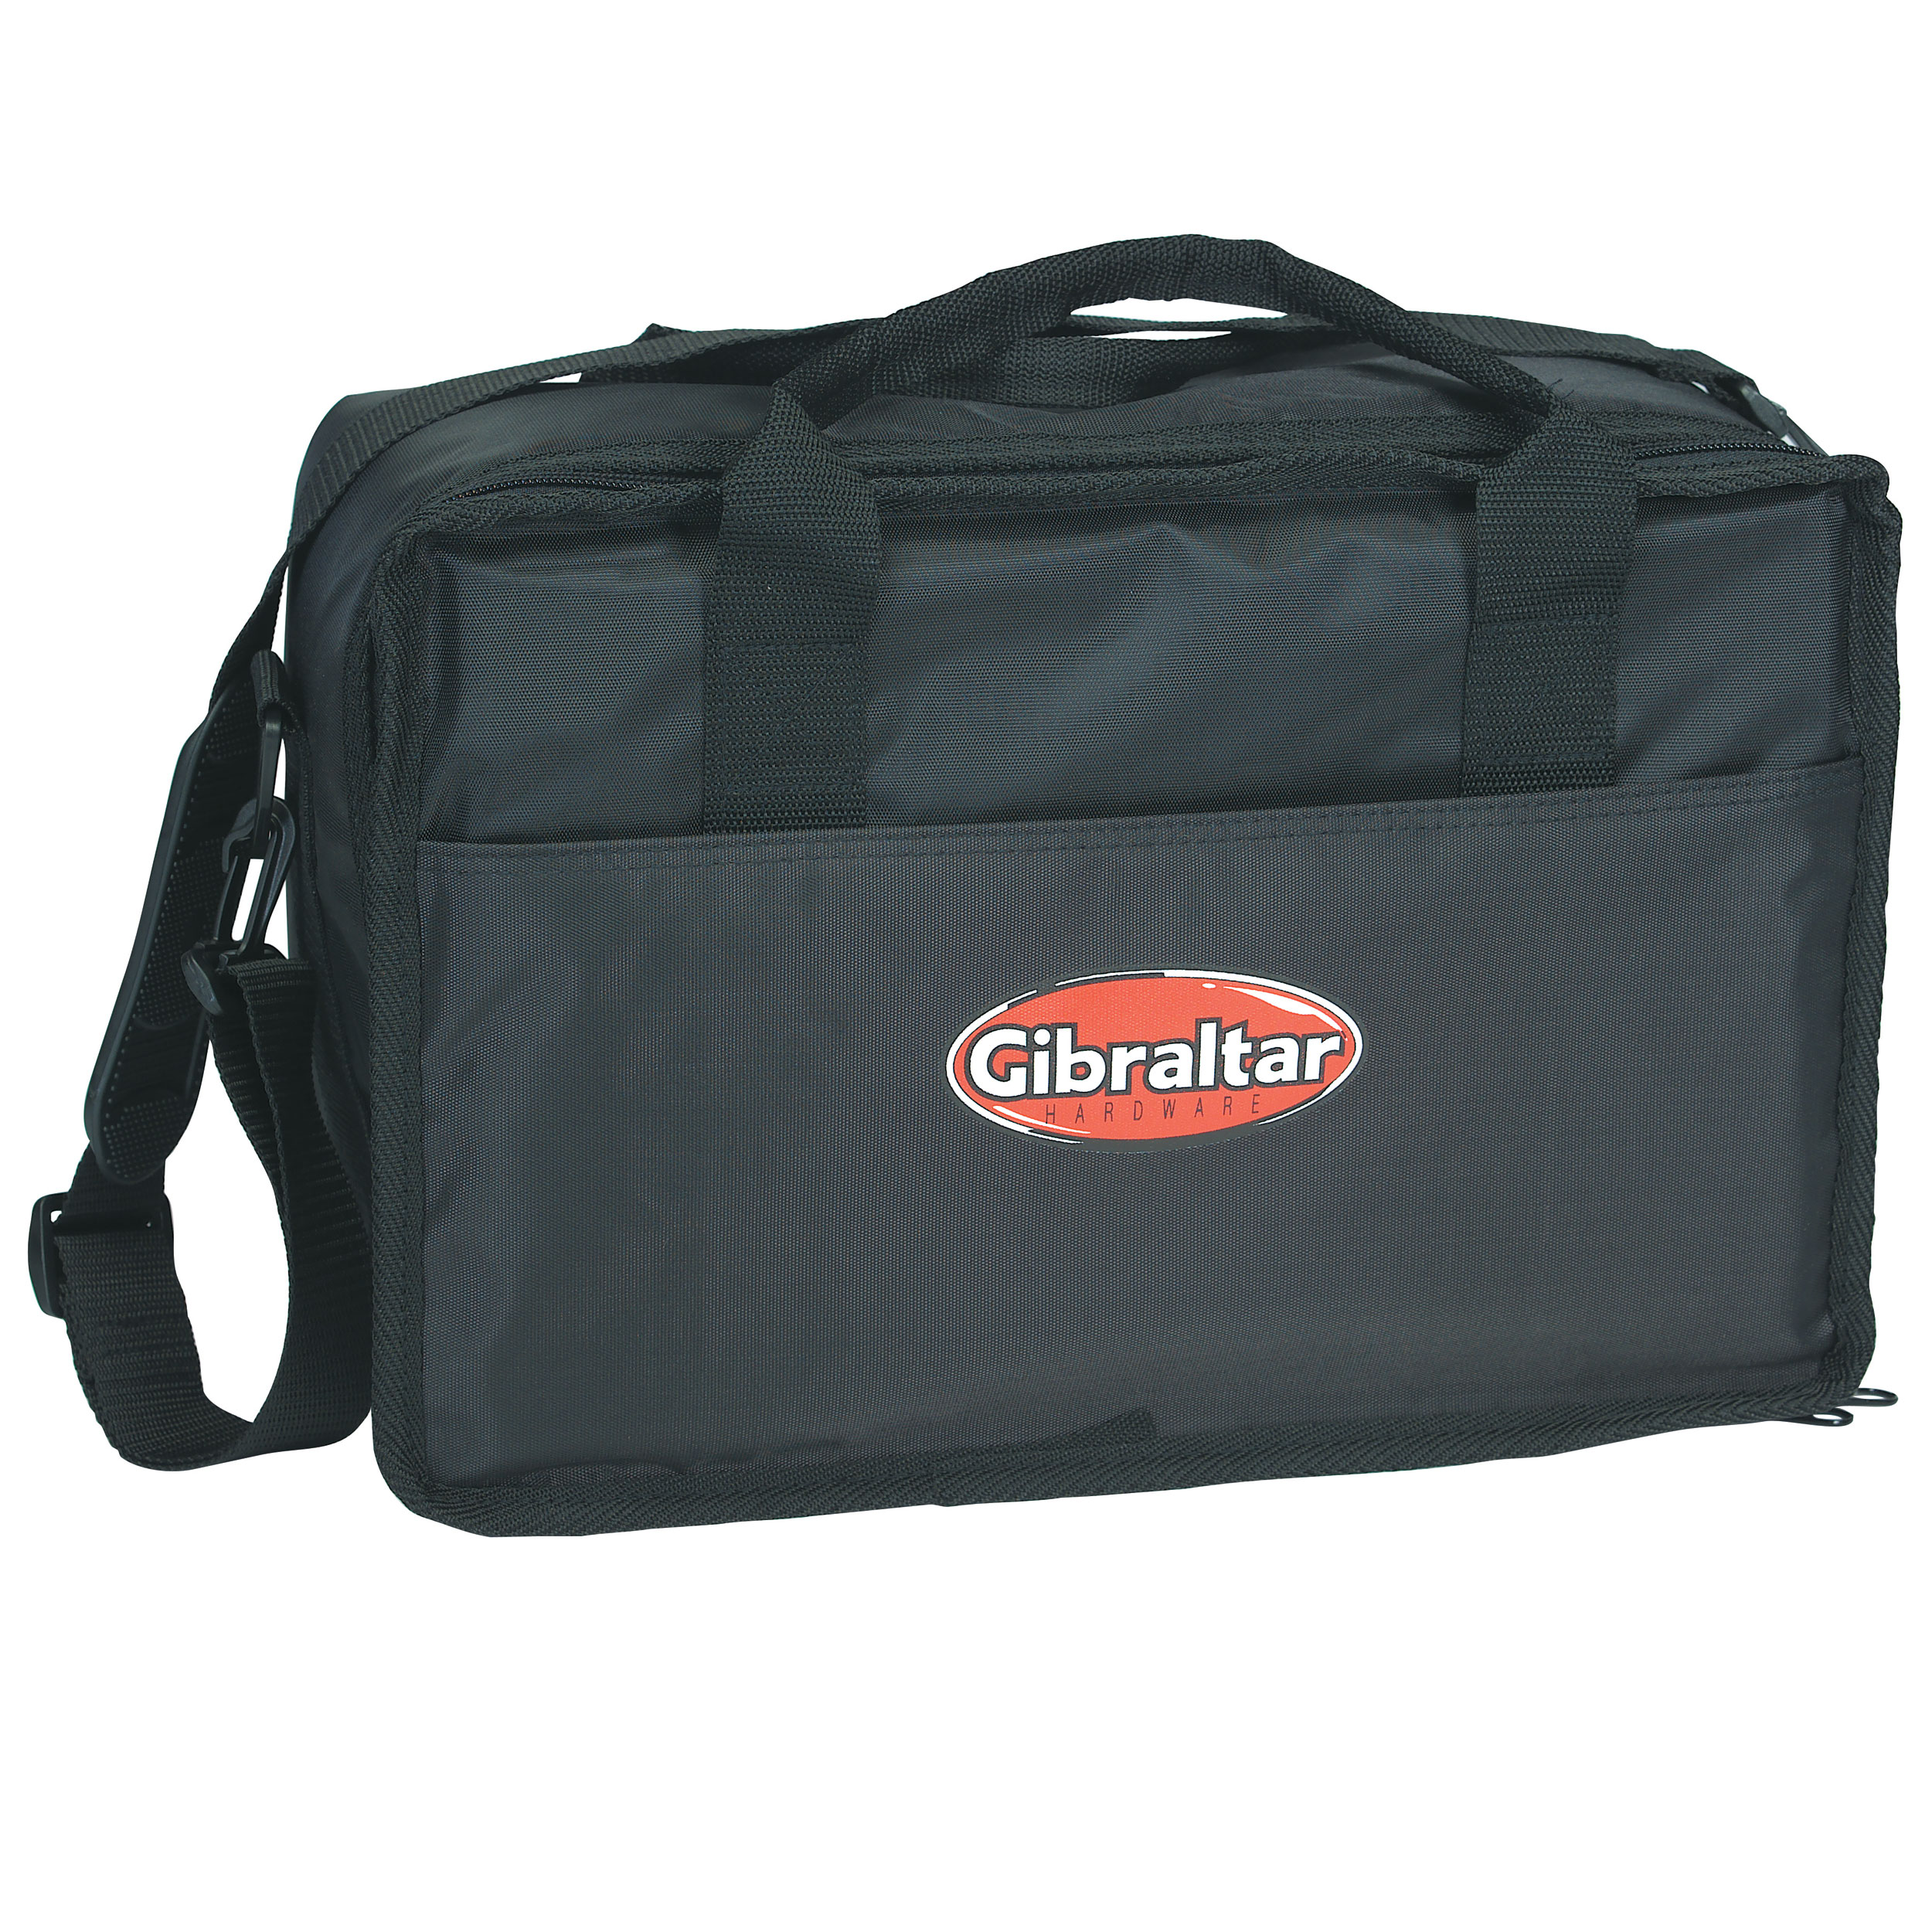 Gibraltar Double Pedal Carry Bag